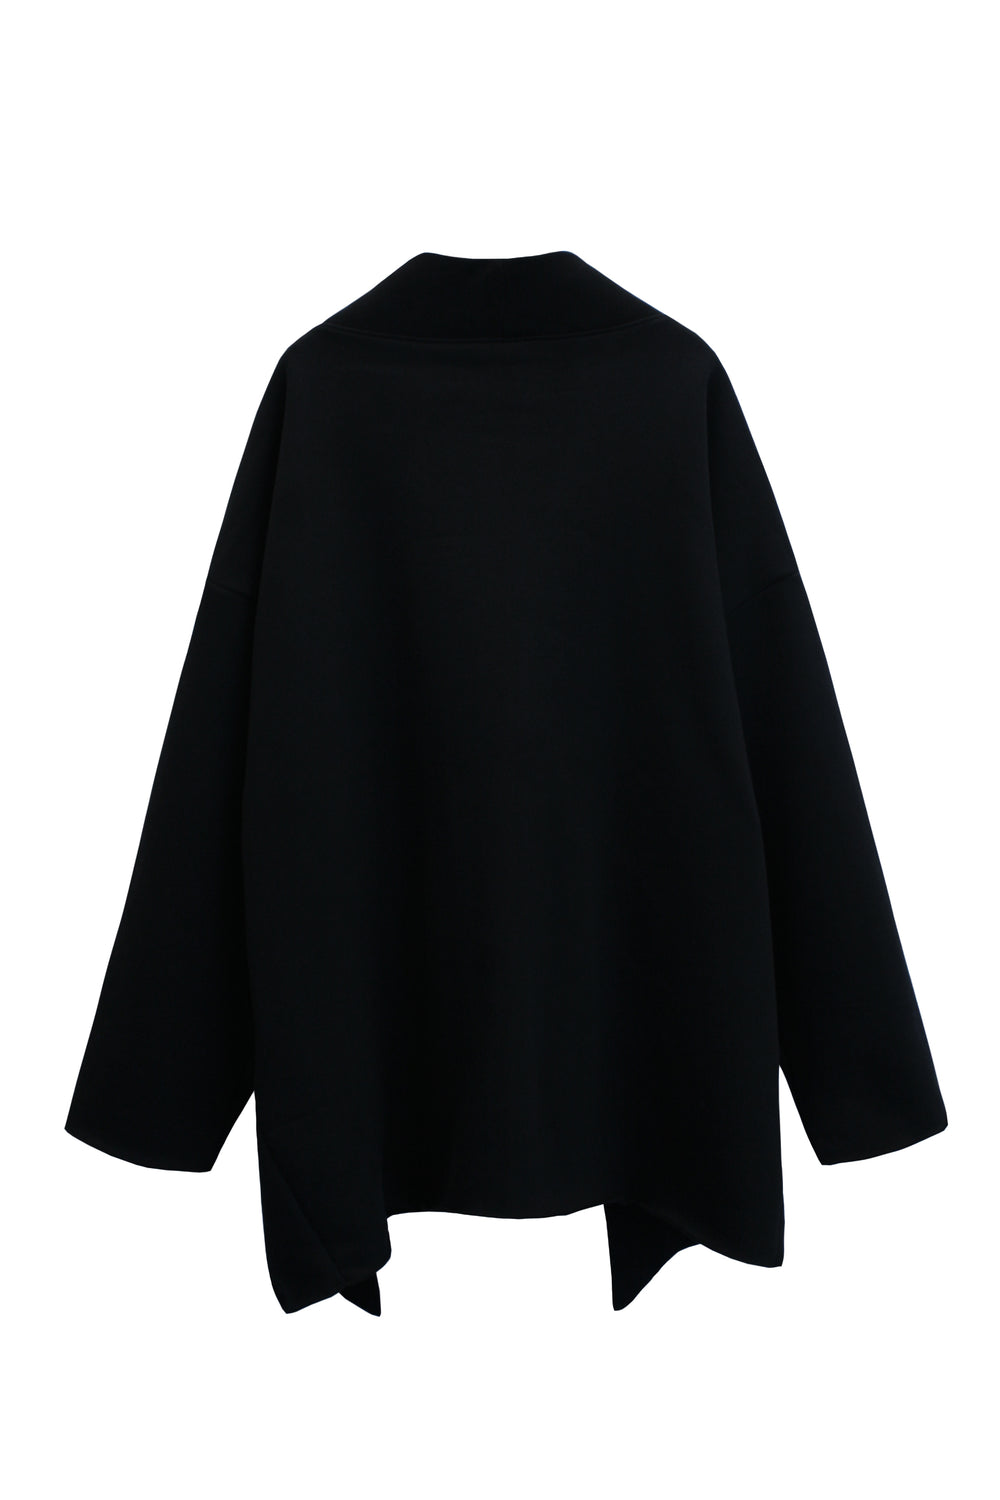 [Pre-Order 20% OFF until 10/25] FW20 Unisex Napped Minimal Cardigan